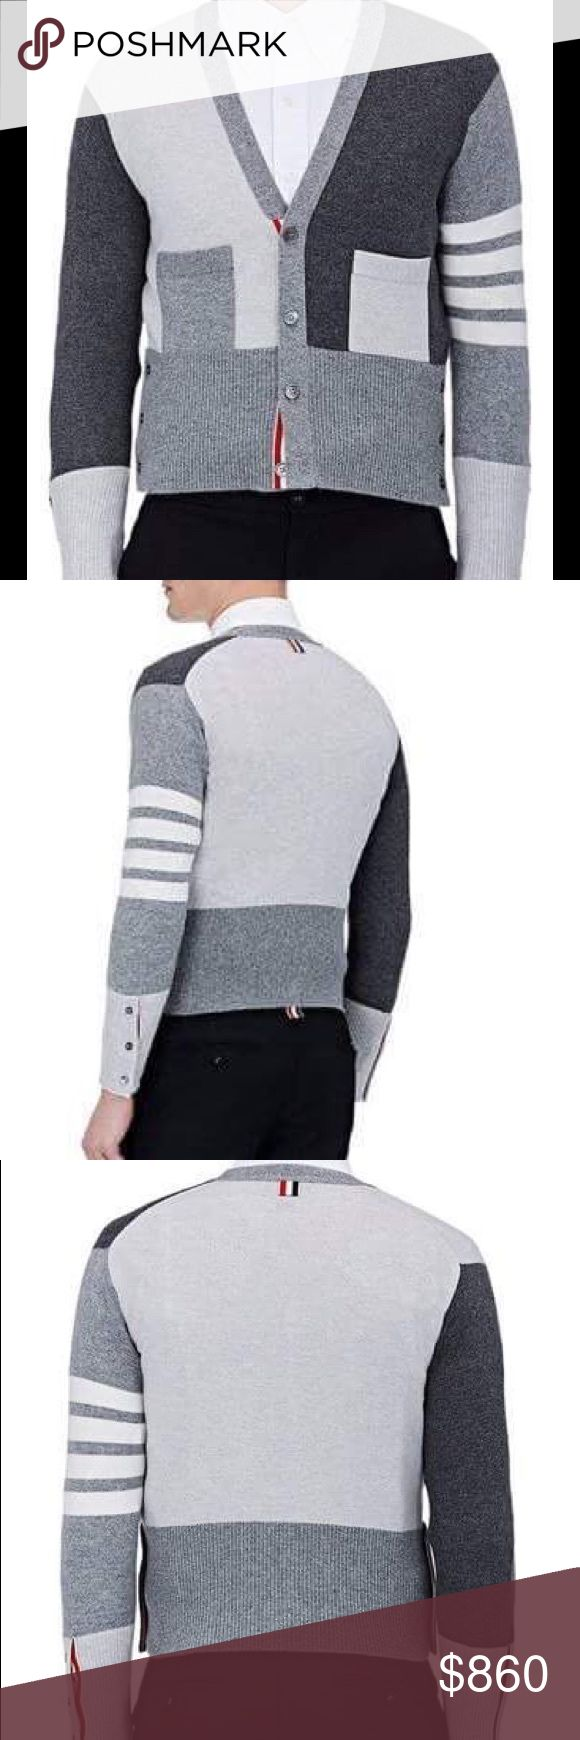 Thom Browne colorblock cashmere cardigan New Thom Browne cardigan Thom Browne Sweaters Cardigan